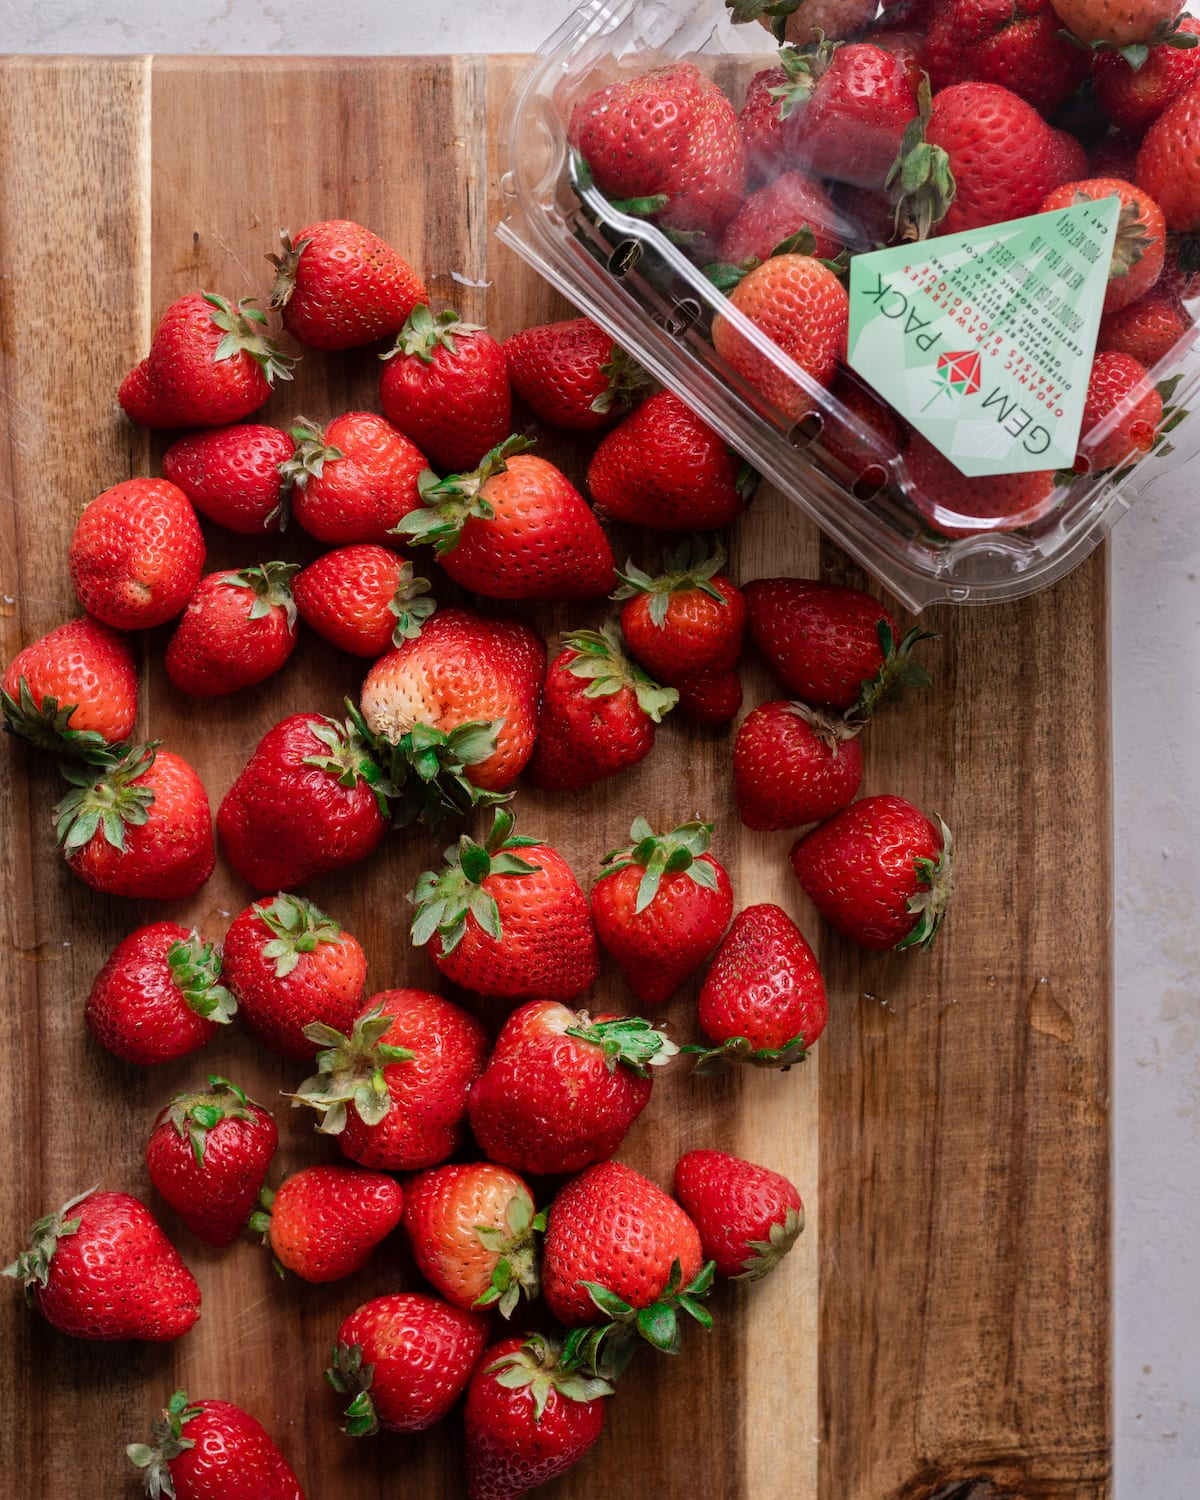 whole strawberries on wooden cutting board with package of strawberries